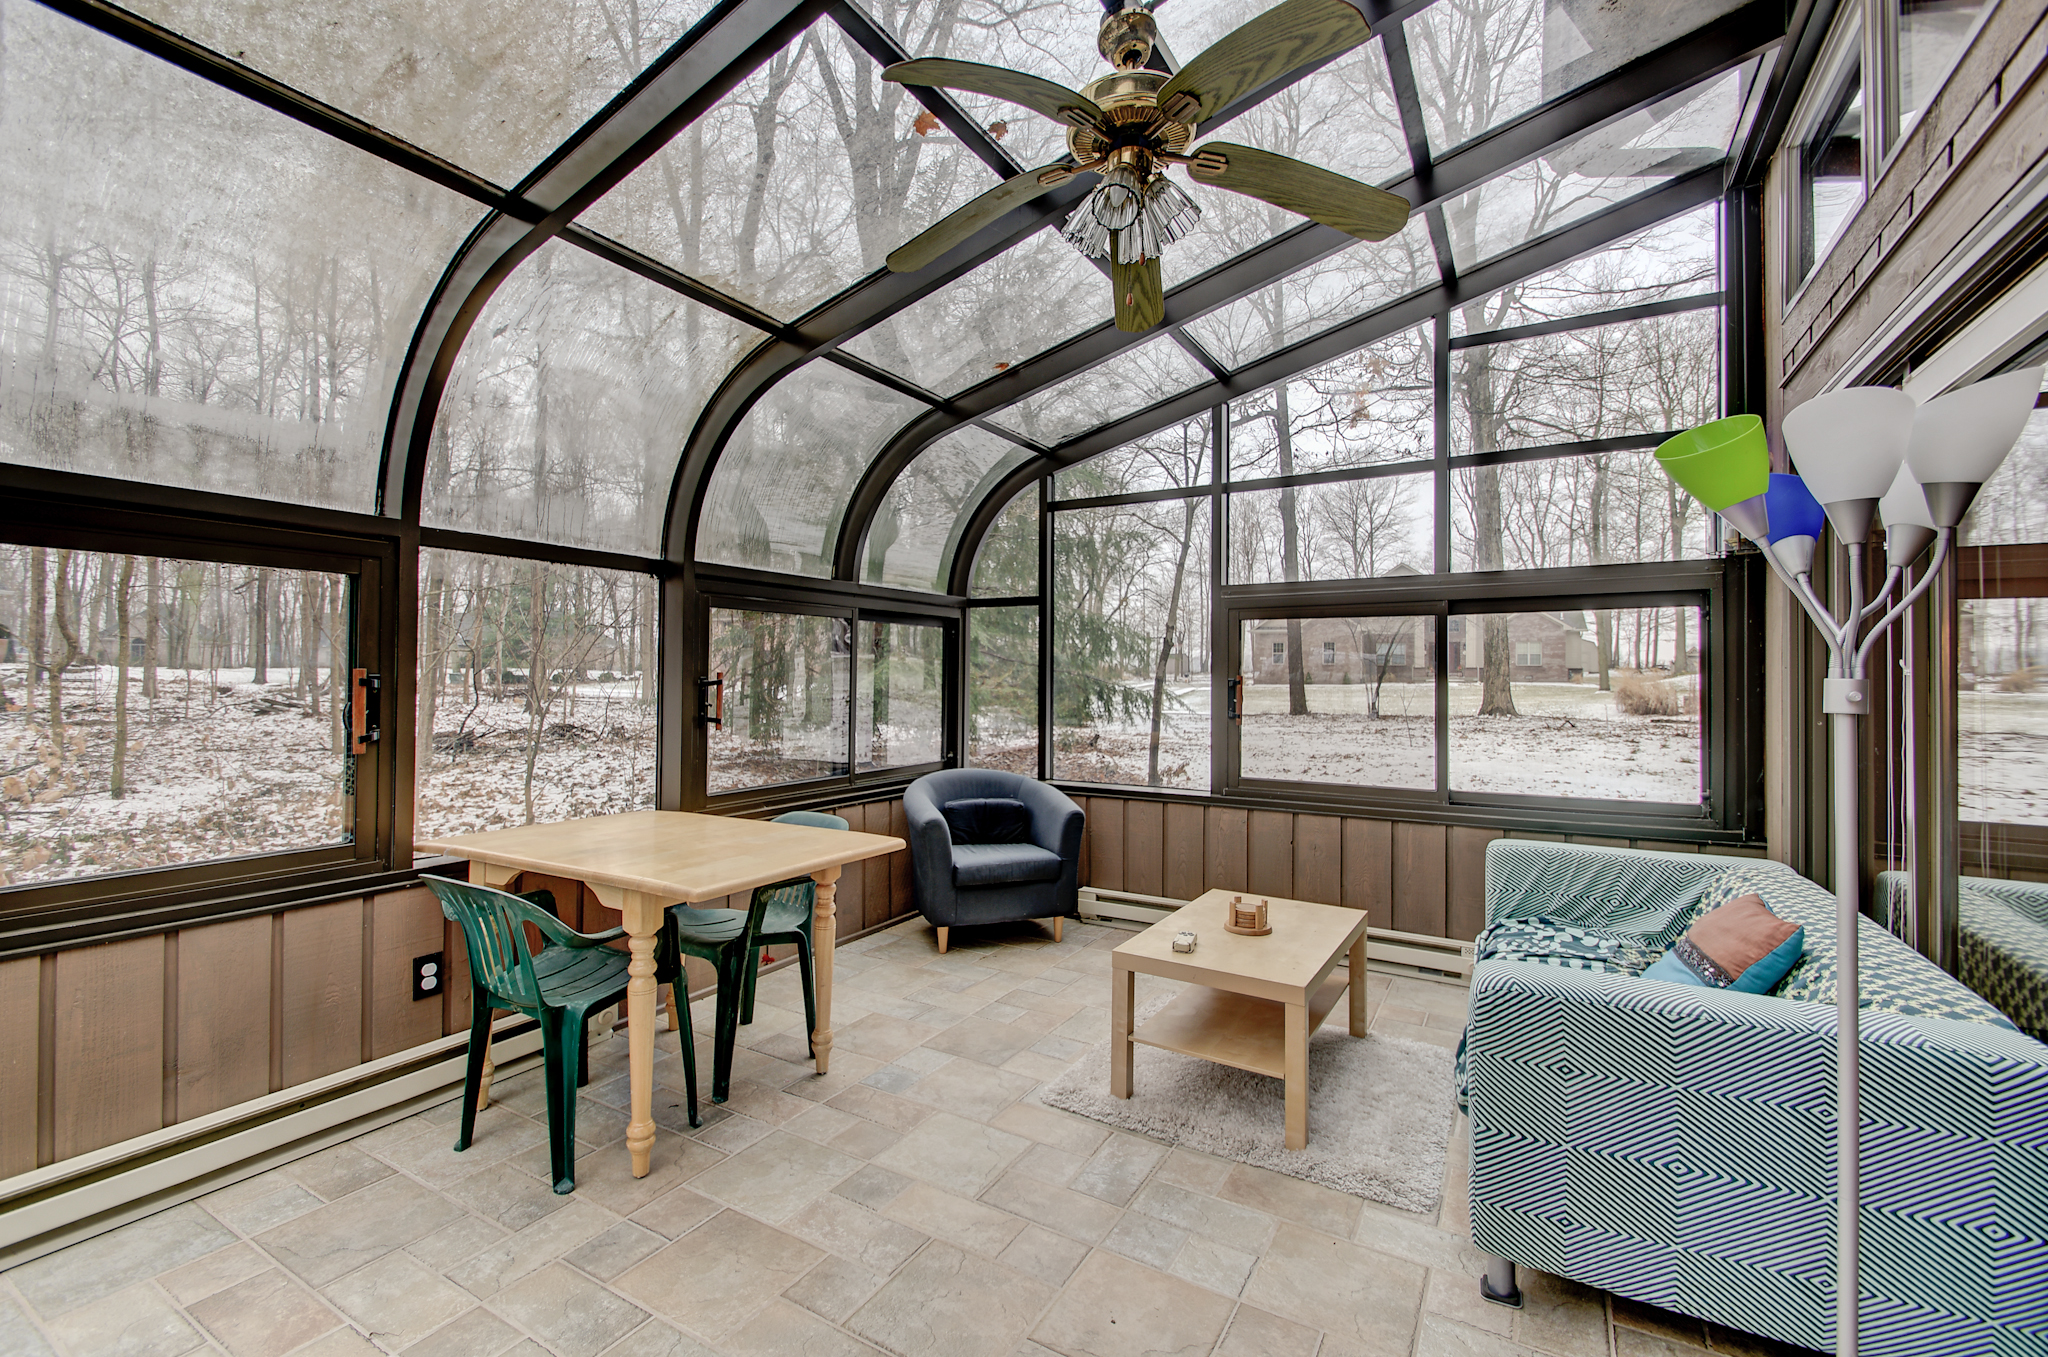 11-Sunroom.jpg